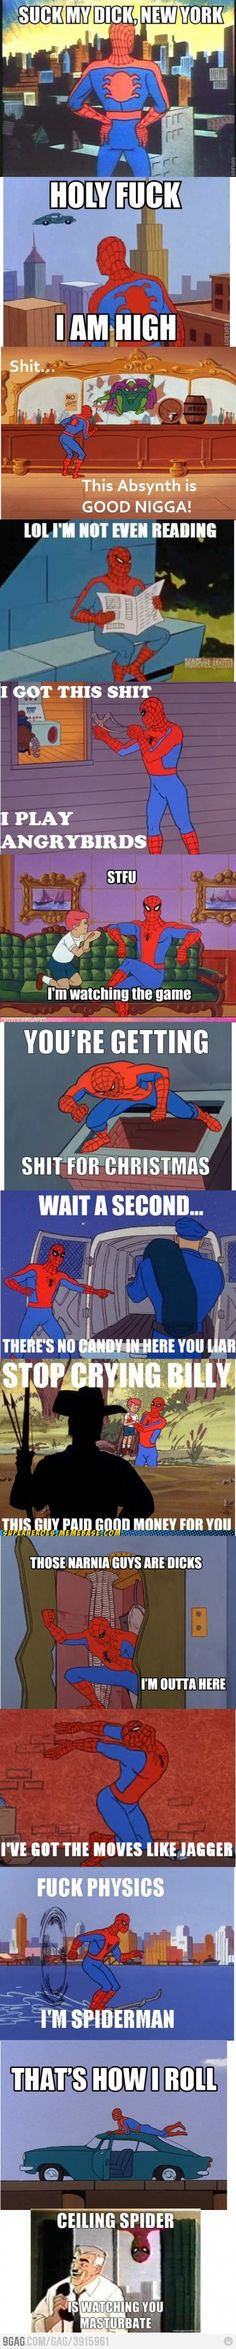 "The best of the 60s Spider-man meme. lol ""You're getting shit for Christmas""... all of them, really"